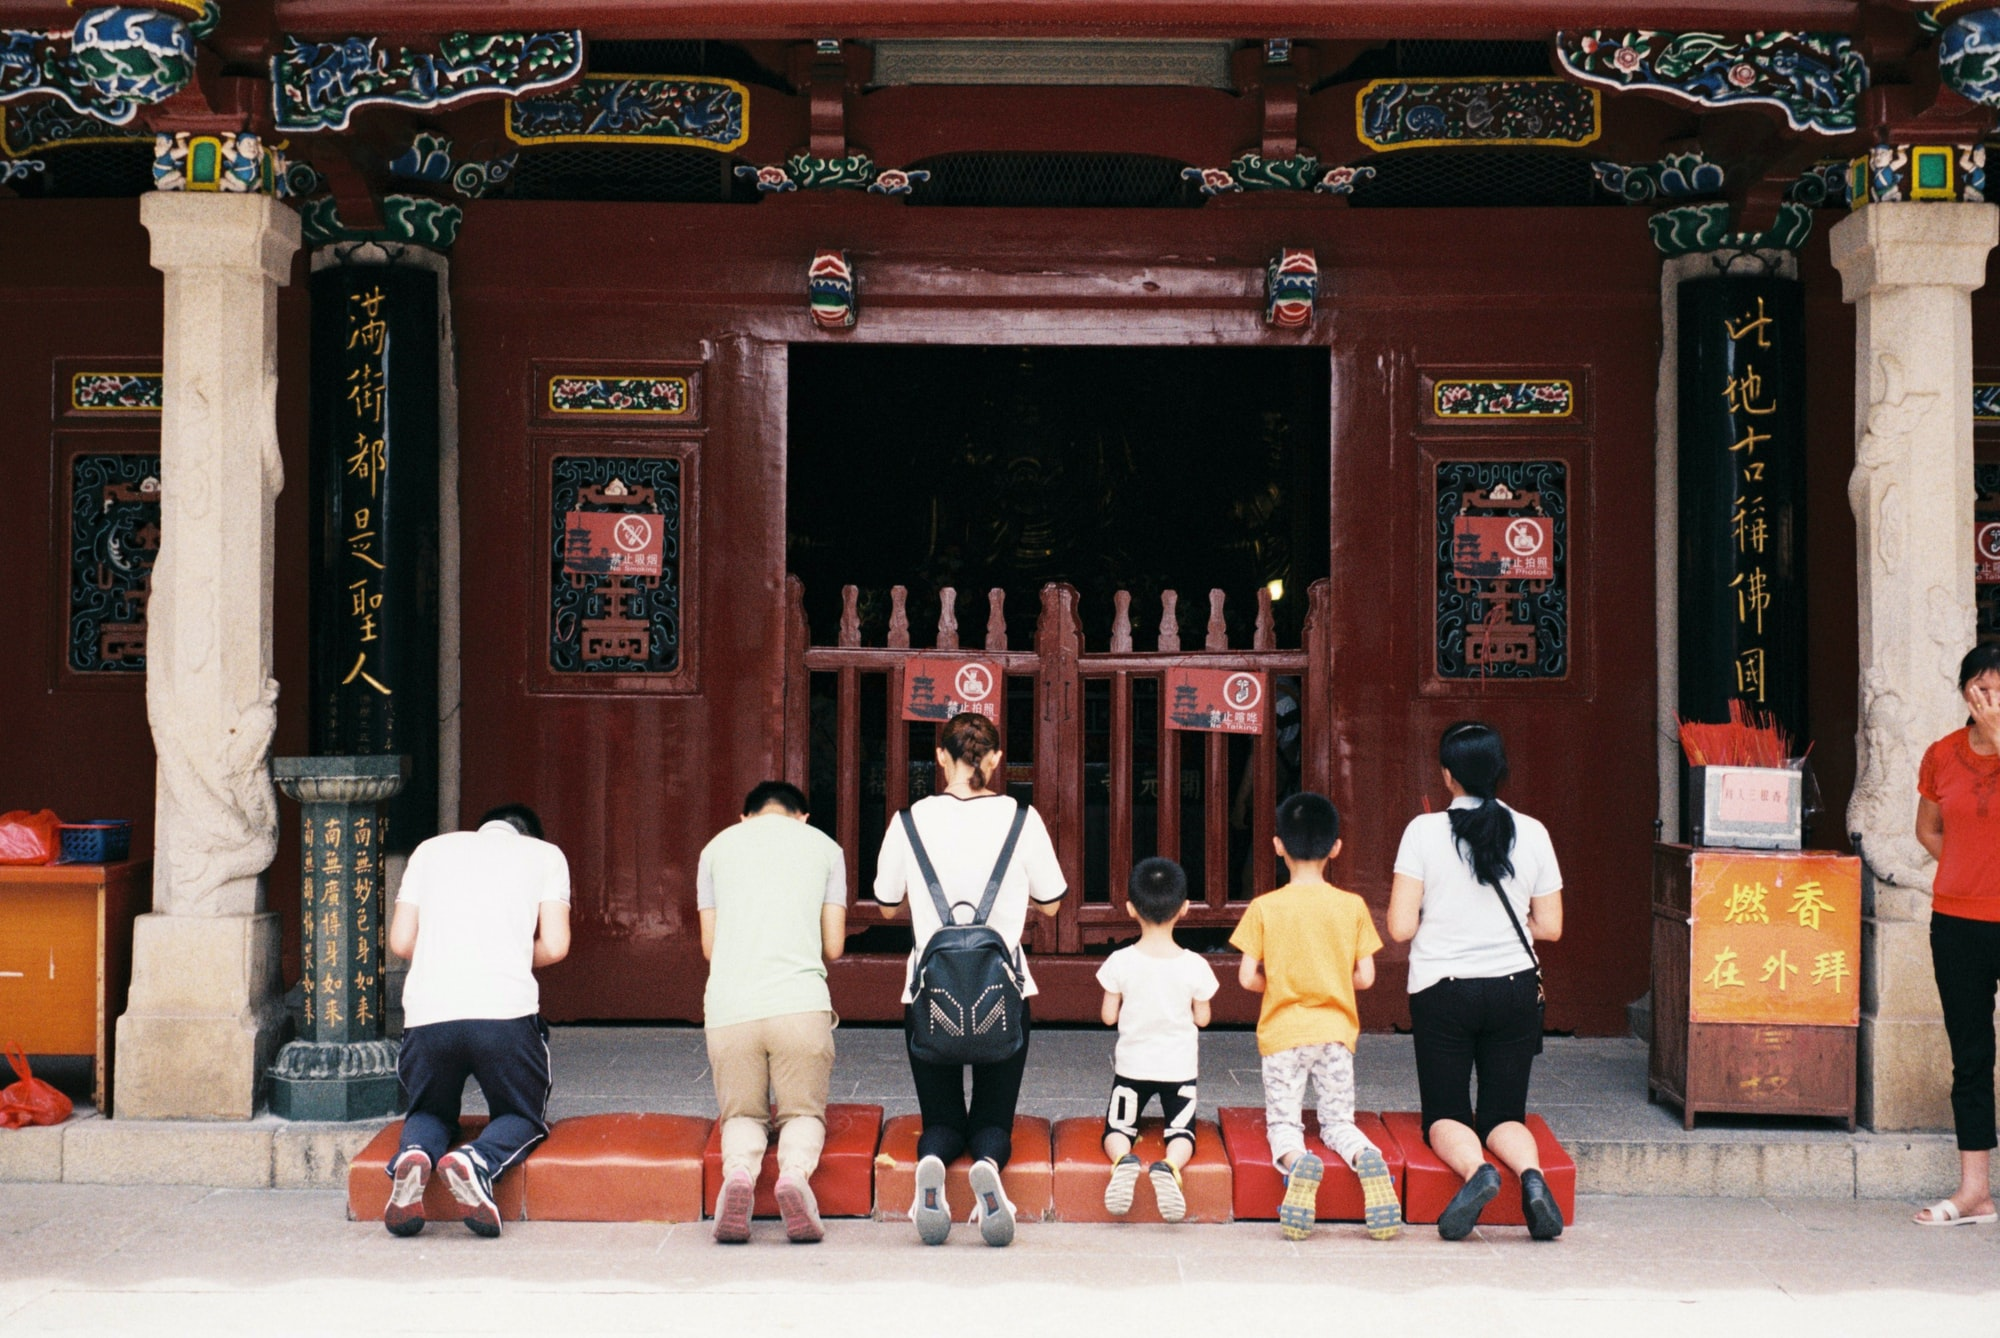 Family praying at a temple